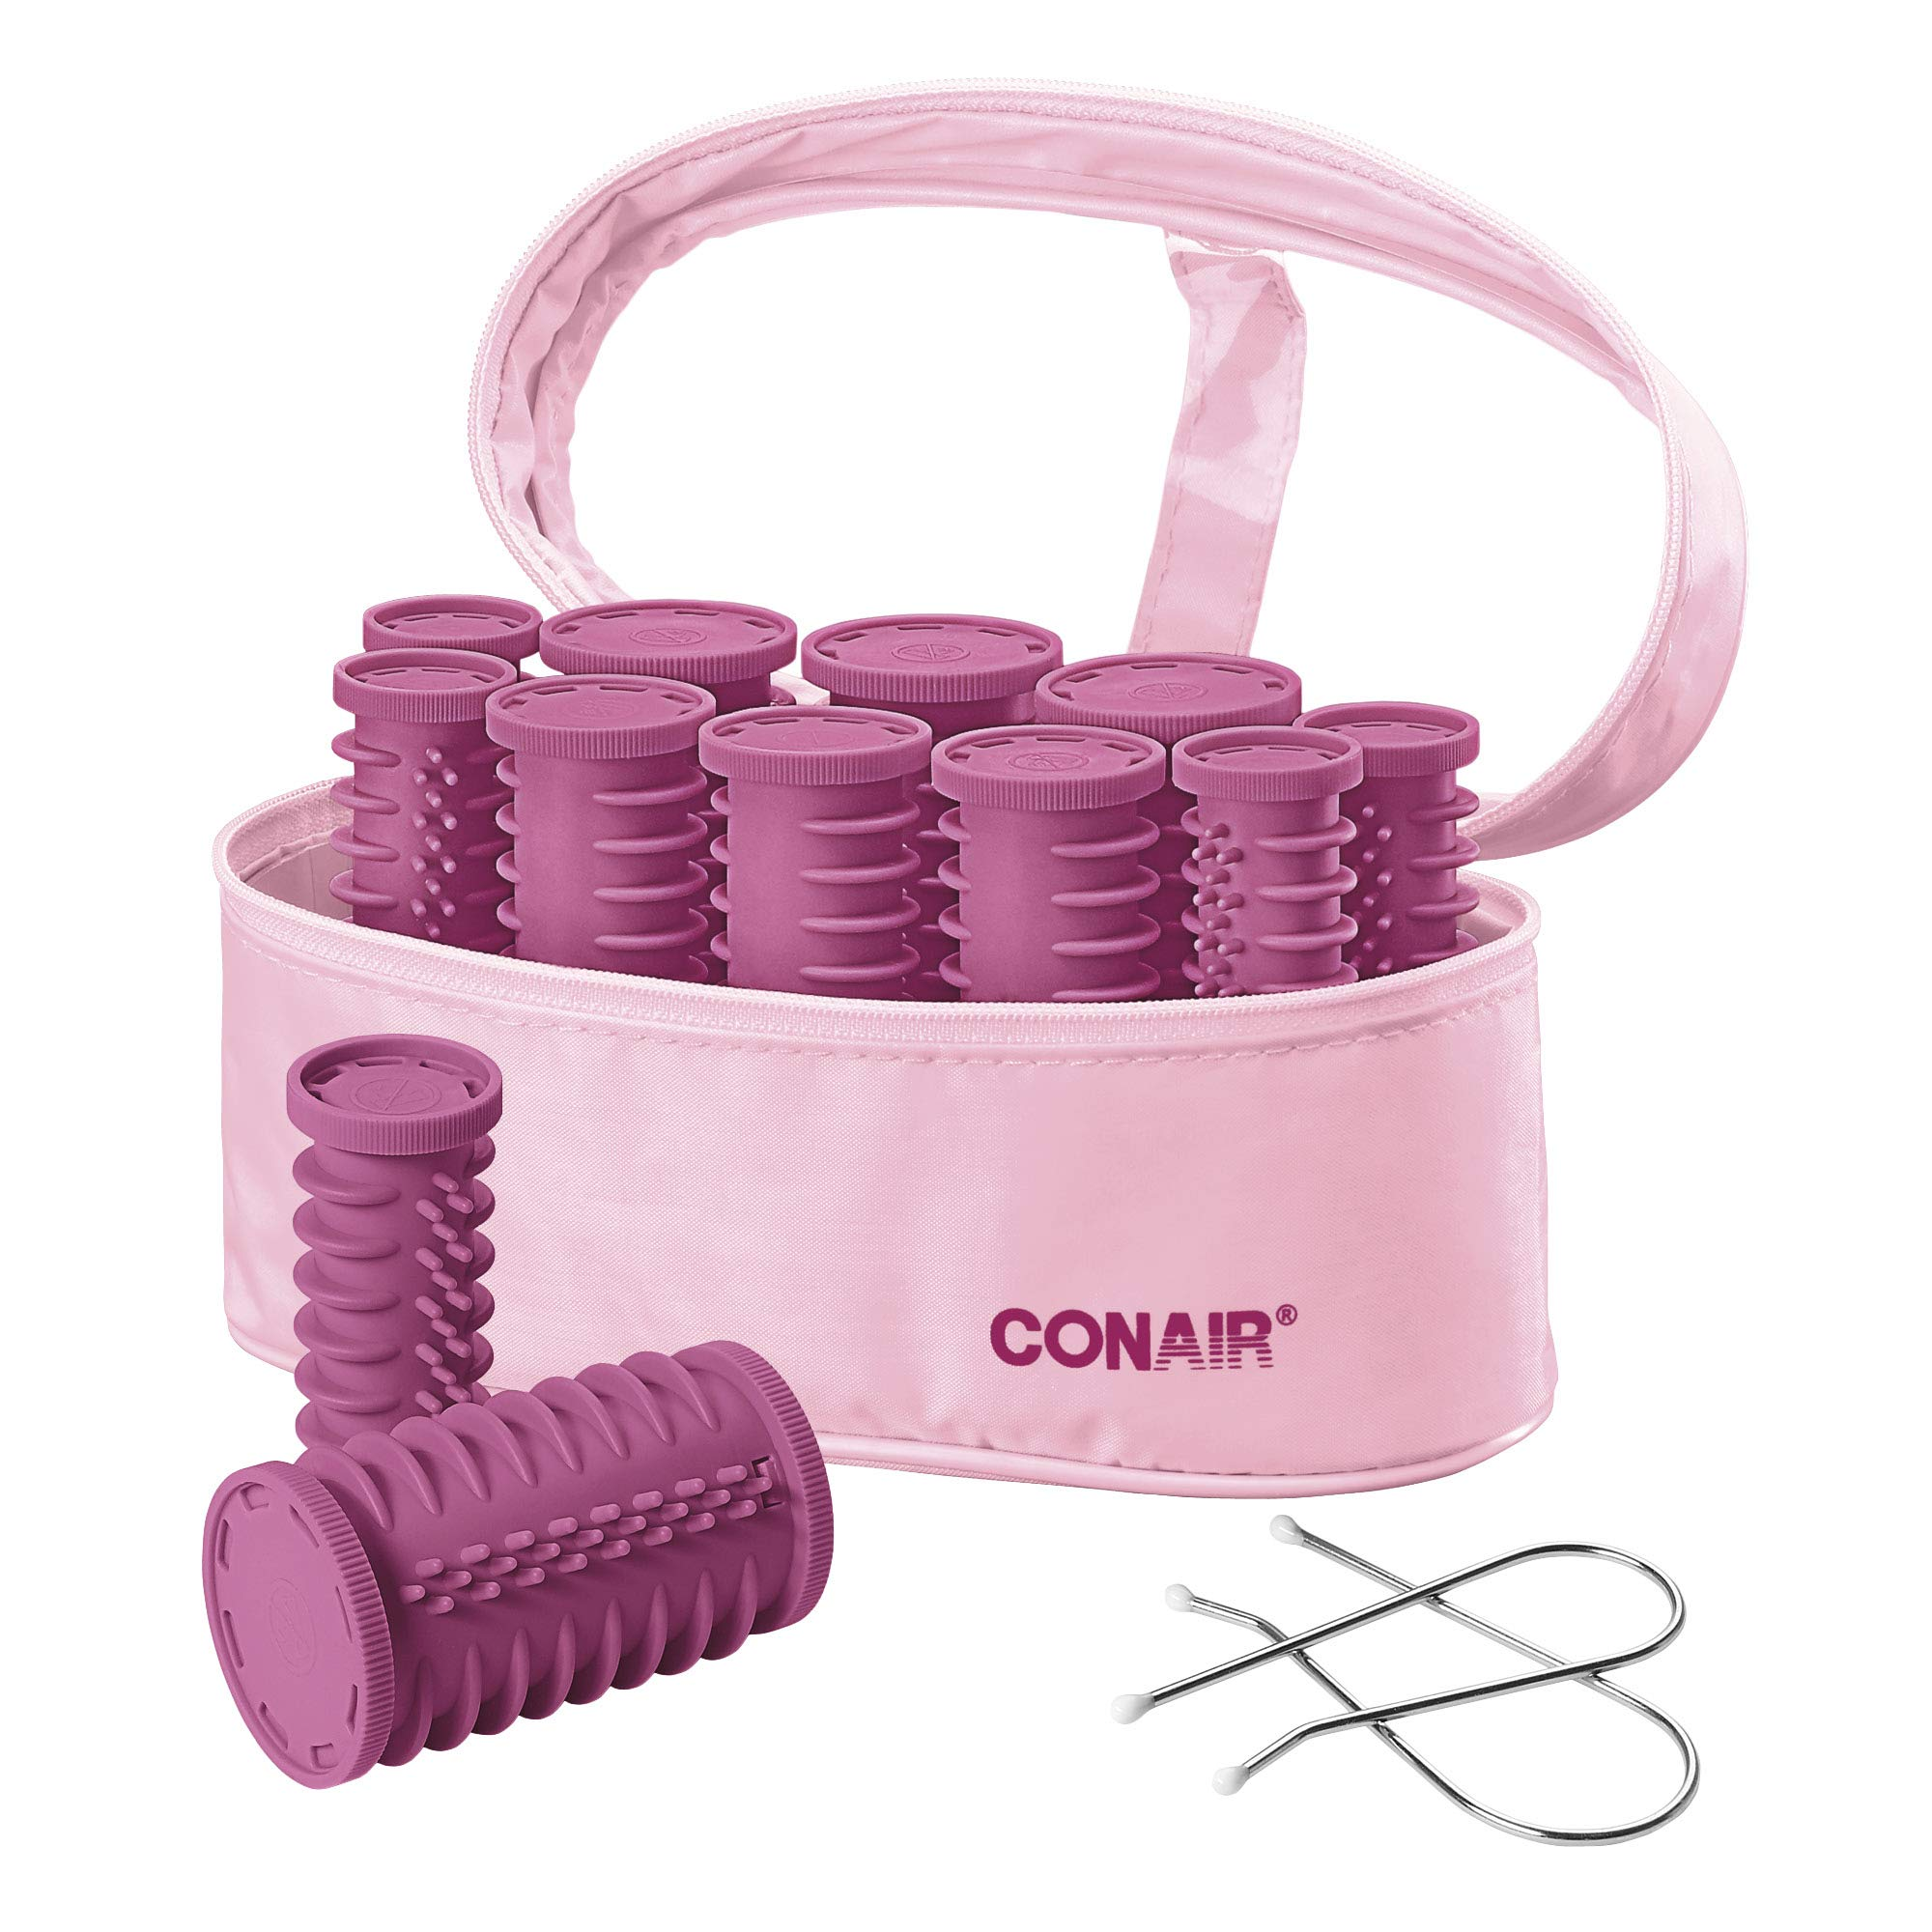 Conair Instant Heat Compact Hot Rollers, Perfect for On-The-Go Styling, Pink, 1 Count